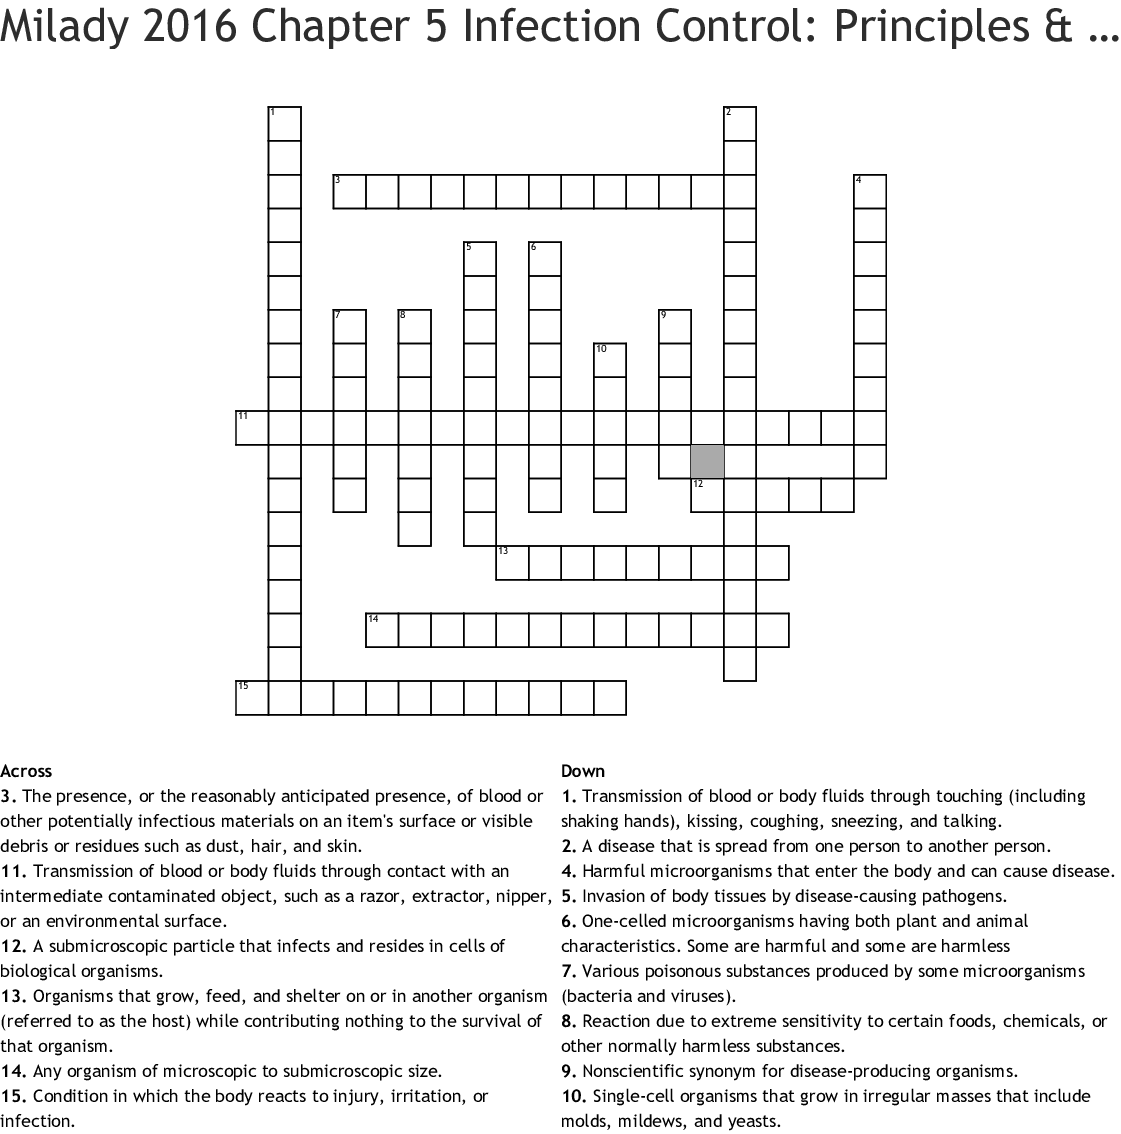 Milady Chapter 5 Infection Control Principles